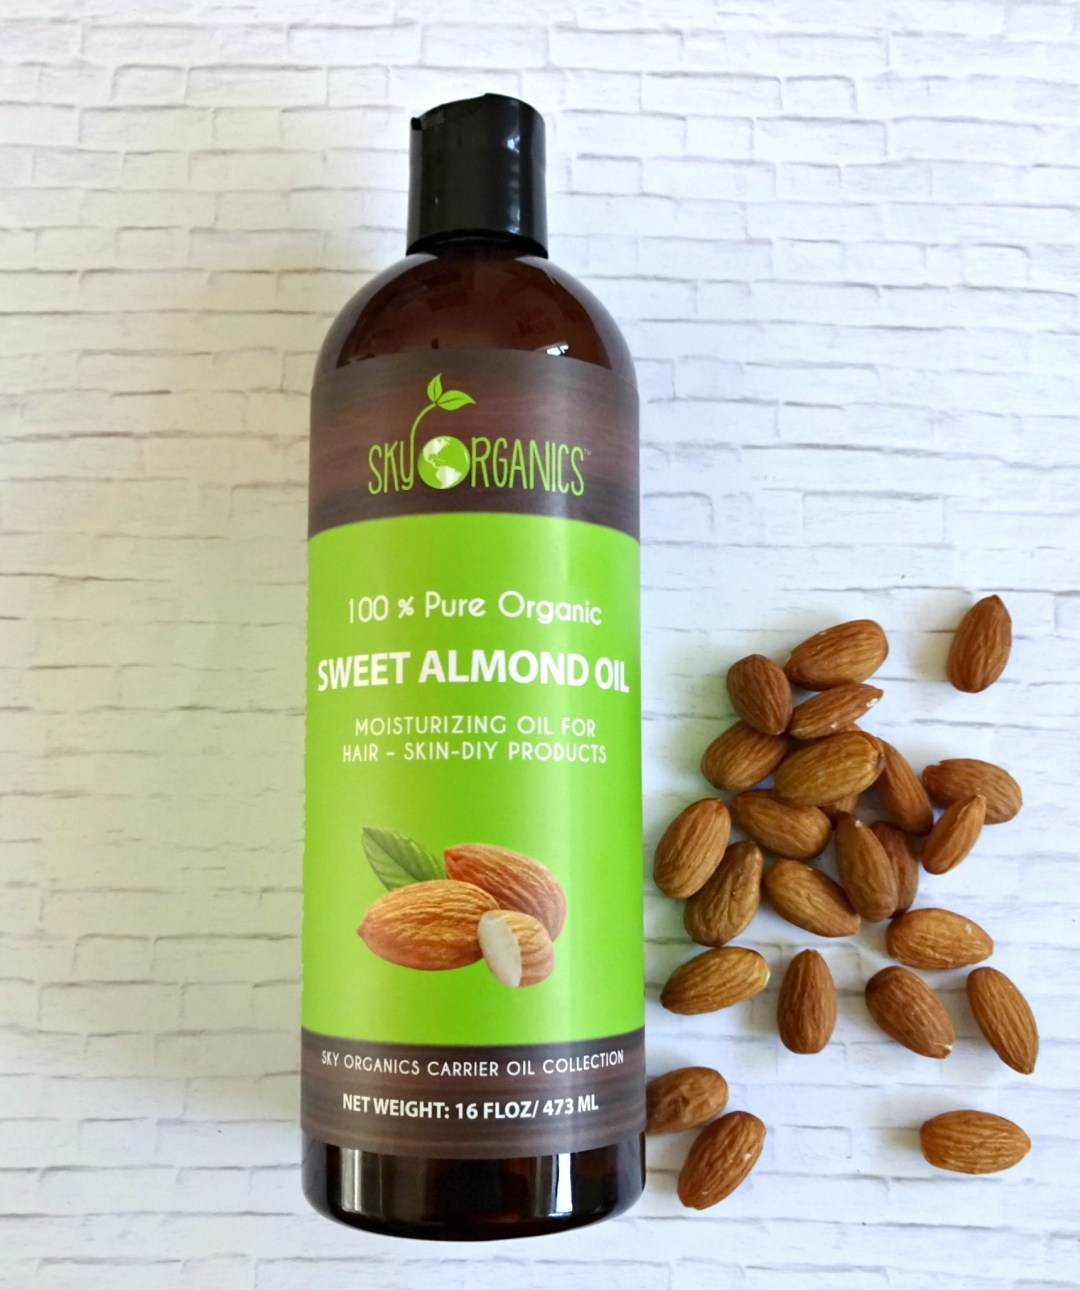 Washing my Face With Almond Oil: The Best Thing I Have Done